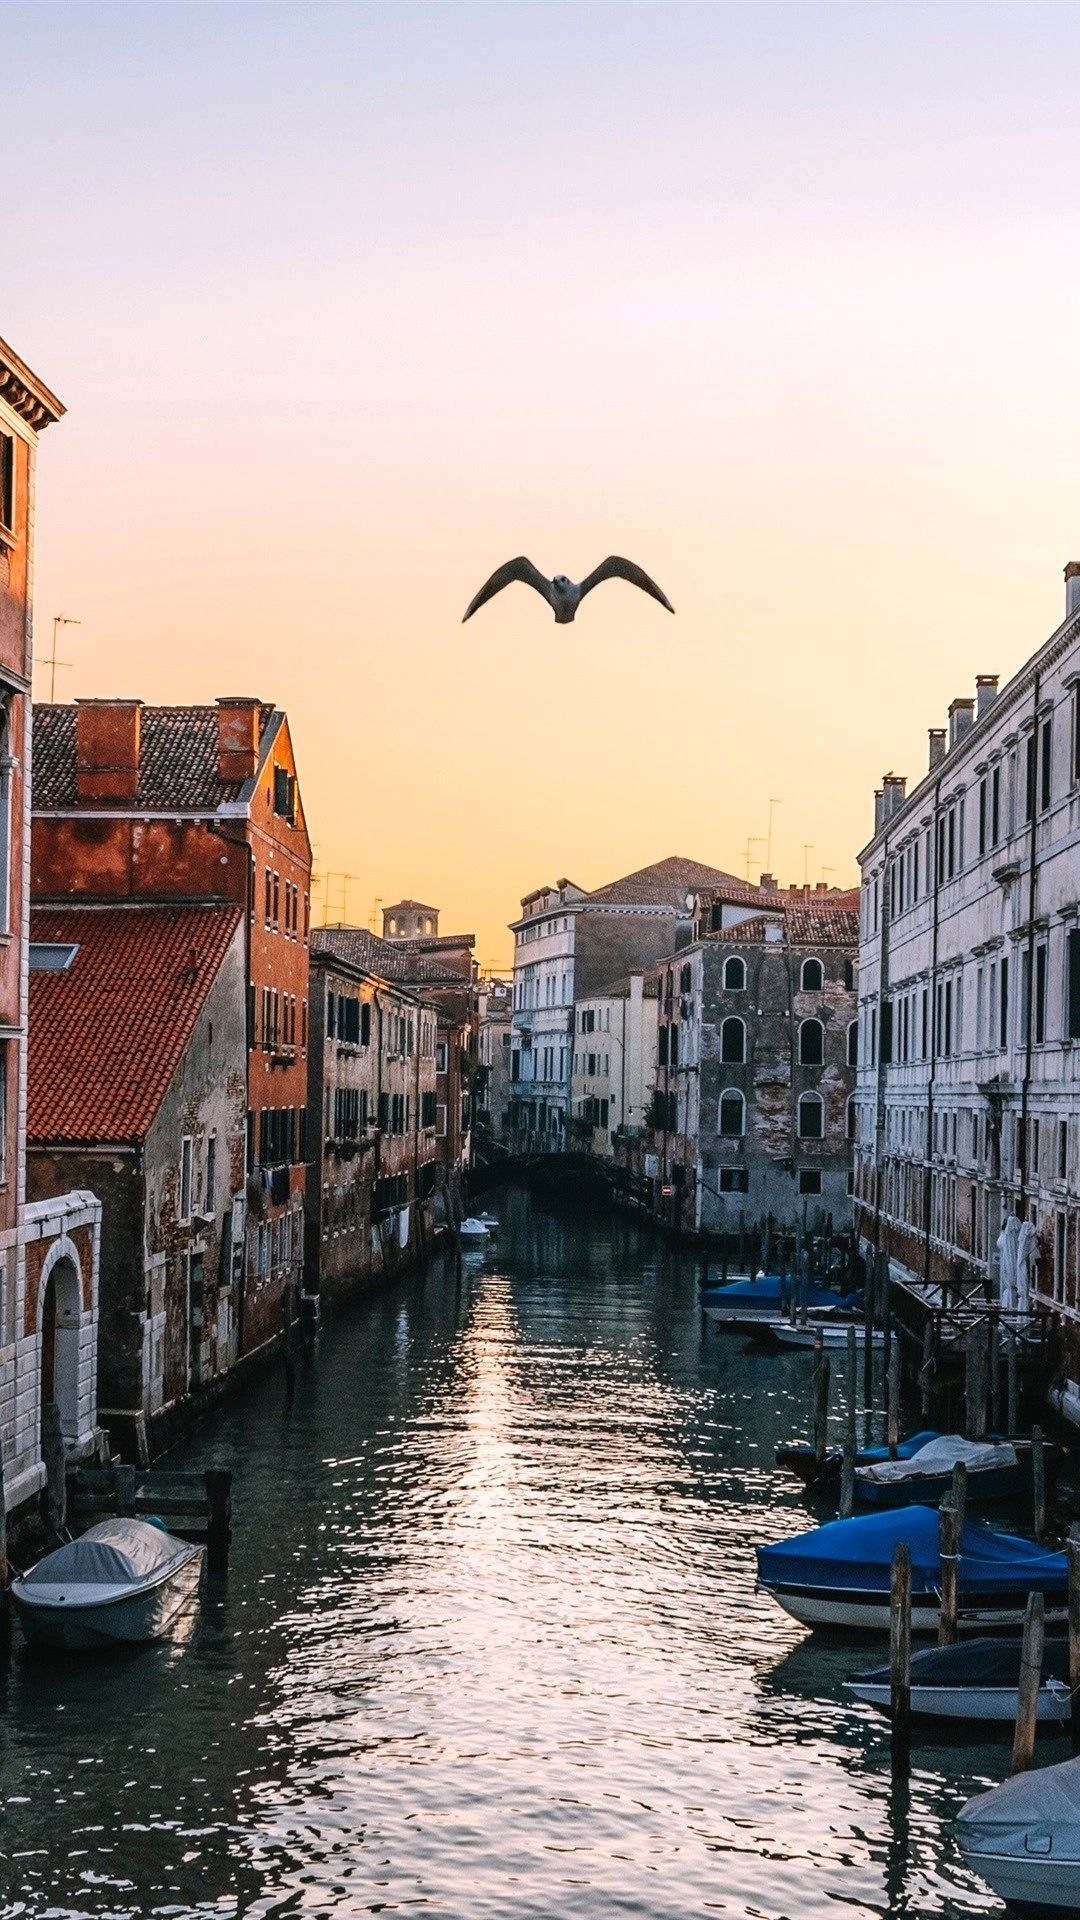 Venice Wallpaper 4k Iphone Ideas Check More At Https Manyaseema